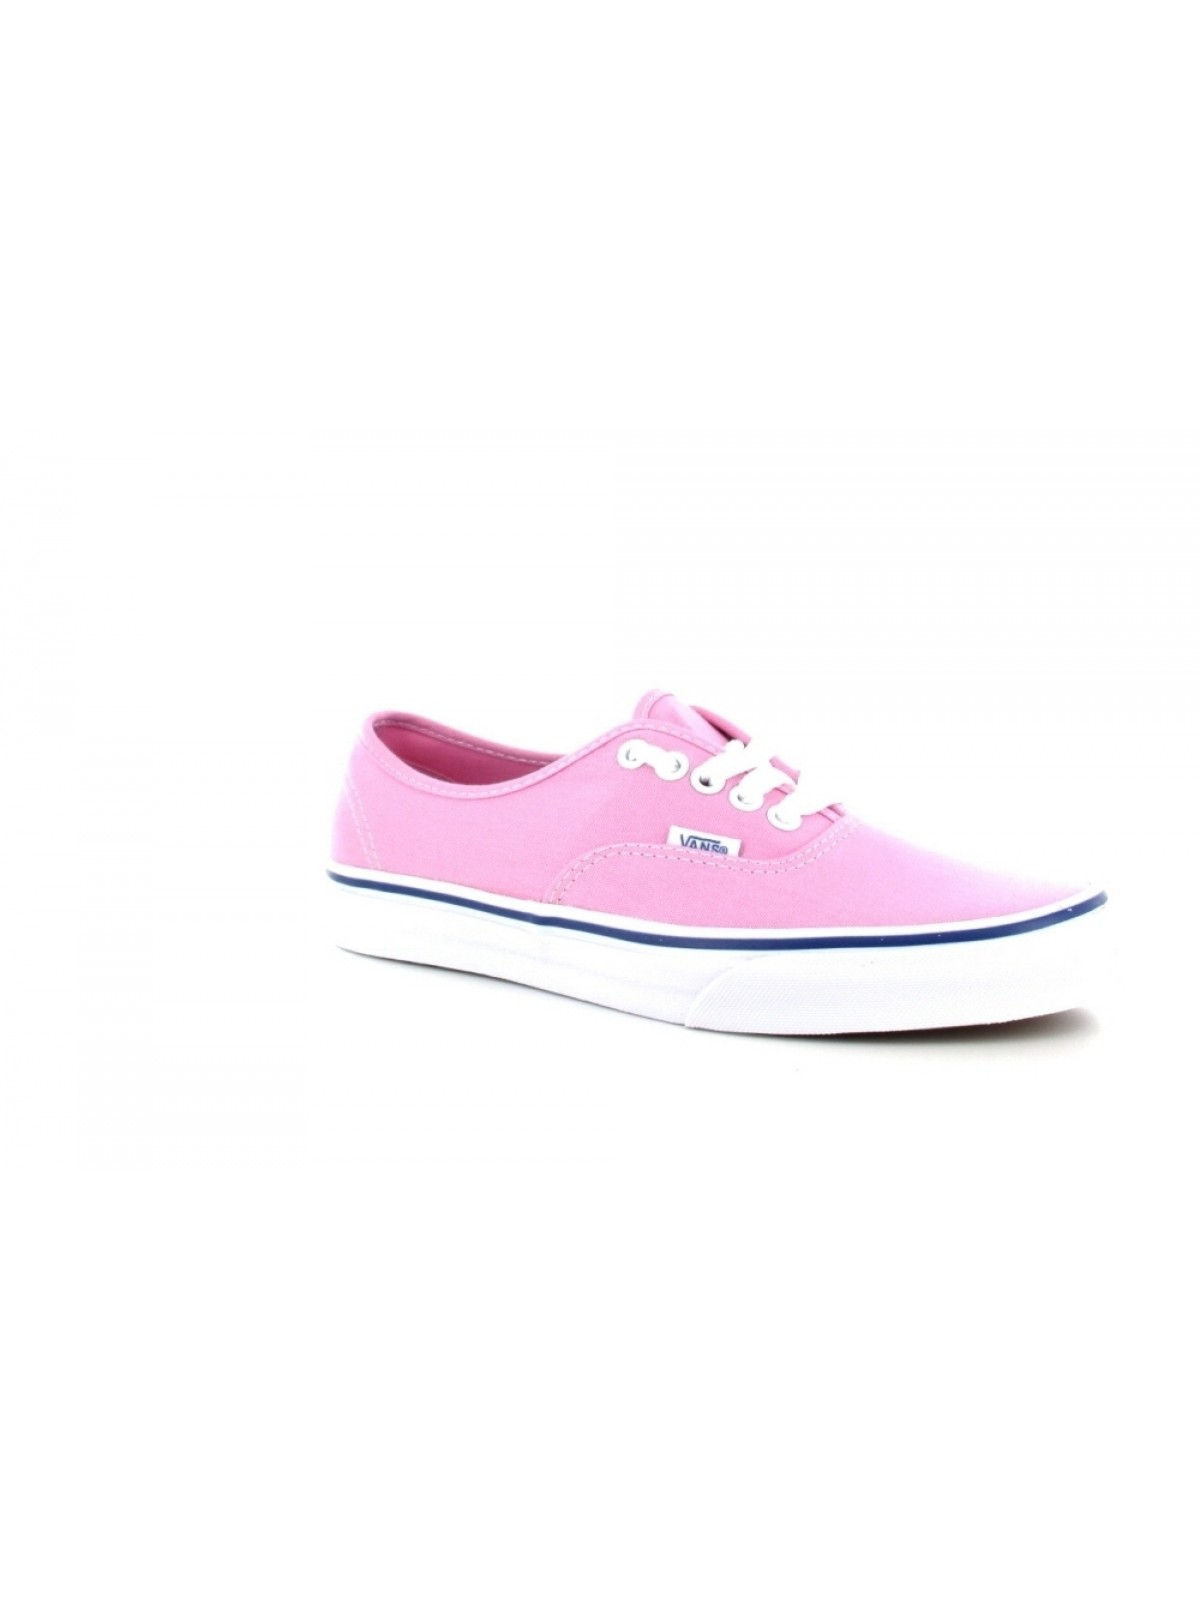 Vans Authentic toile prism pink